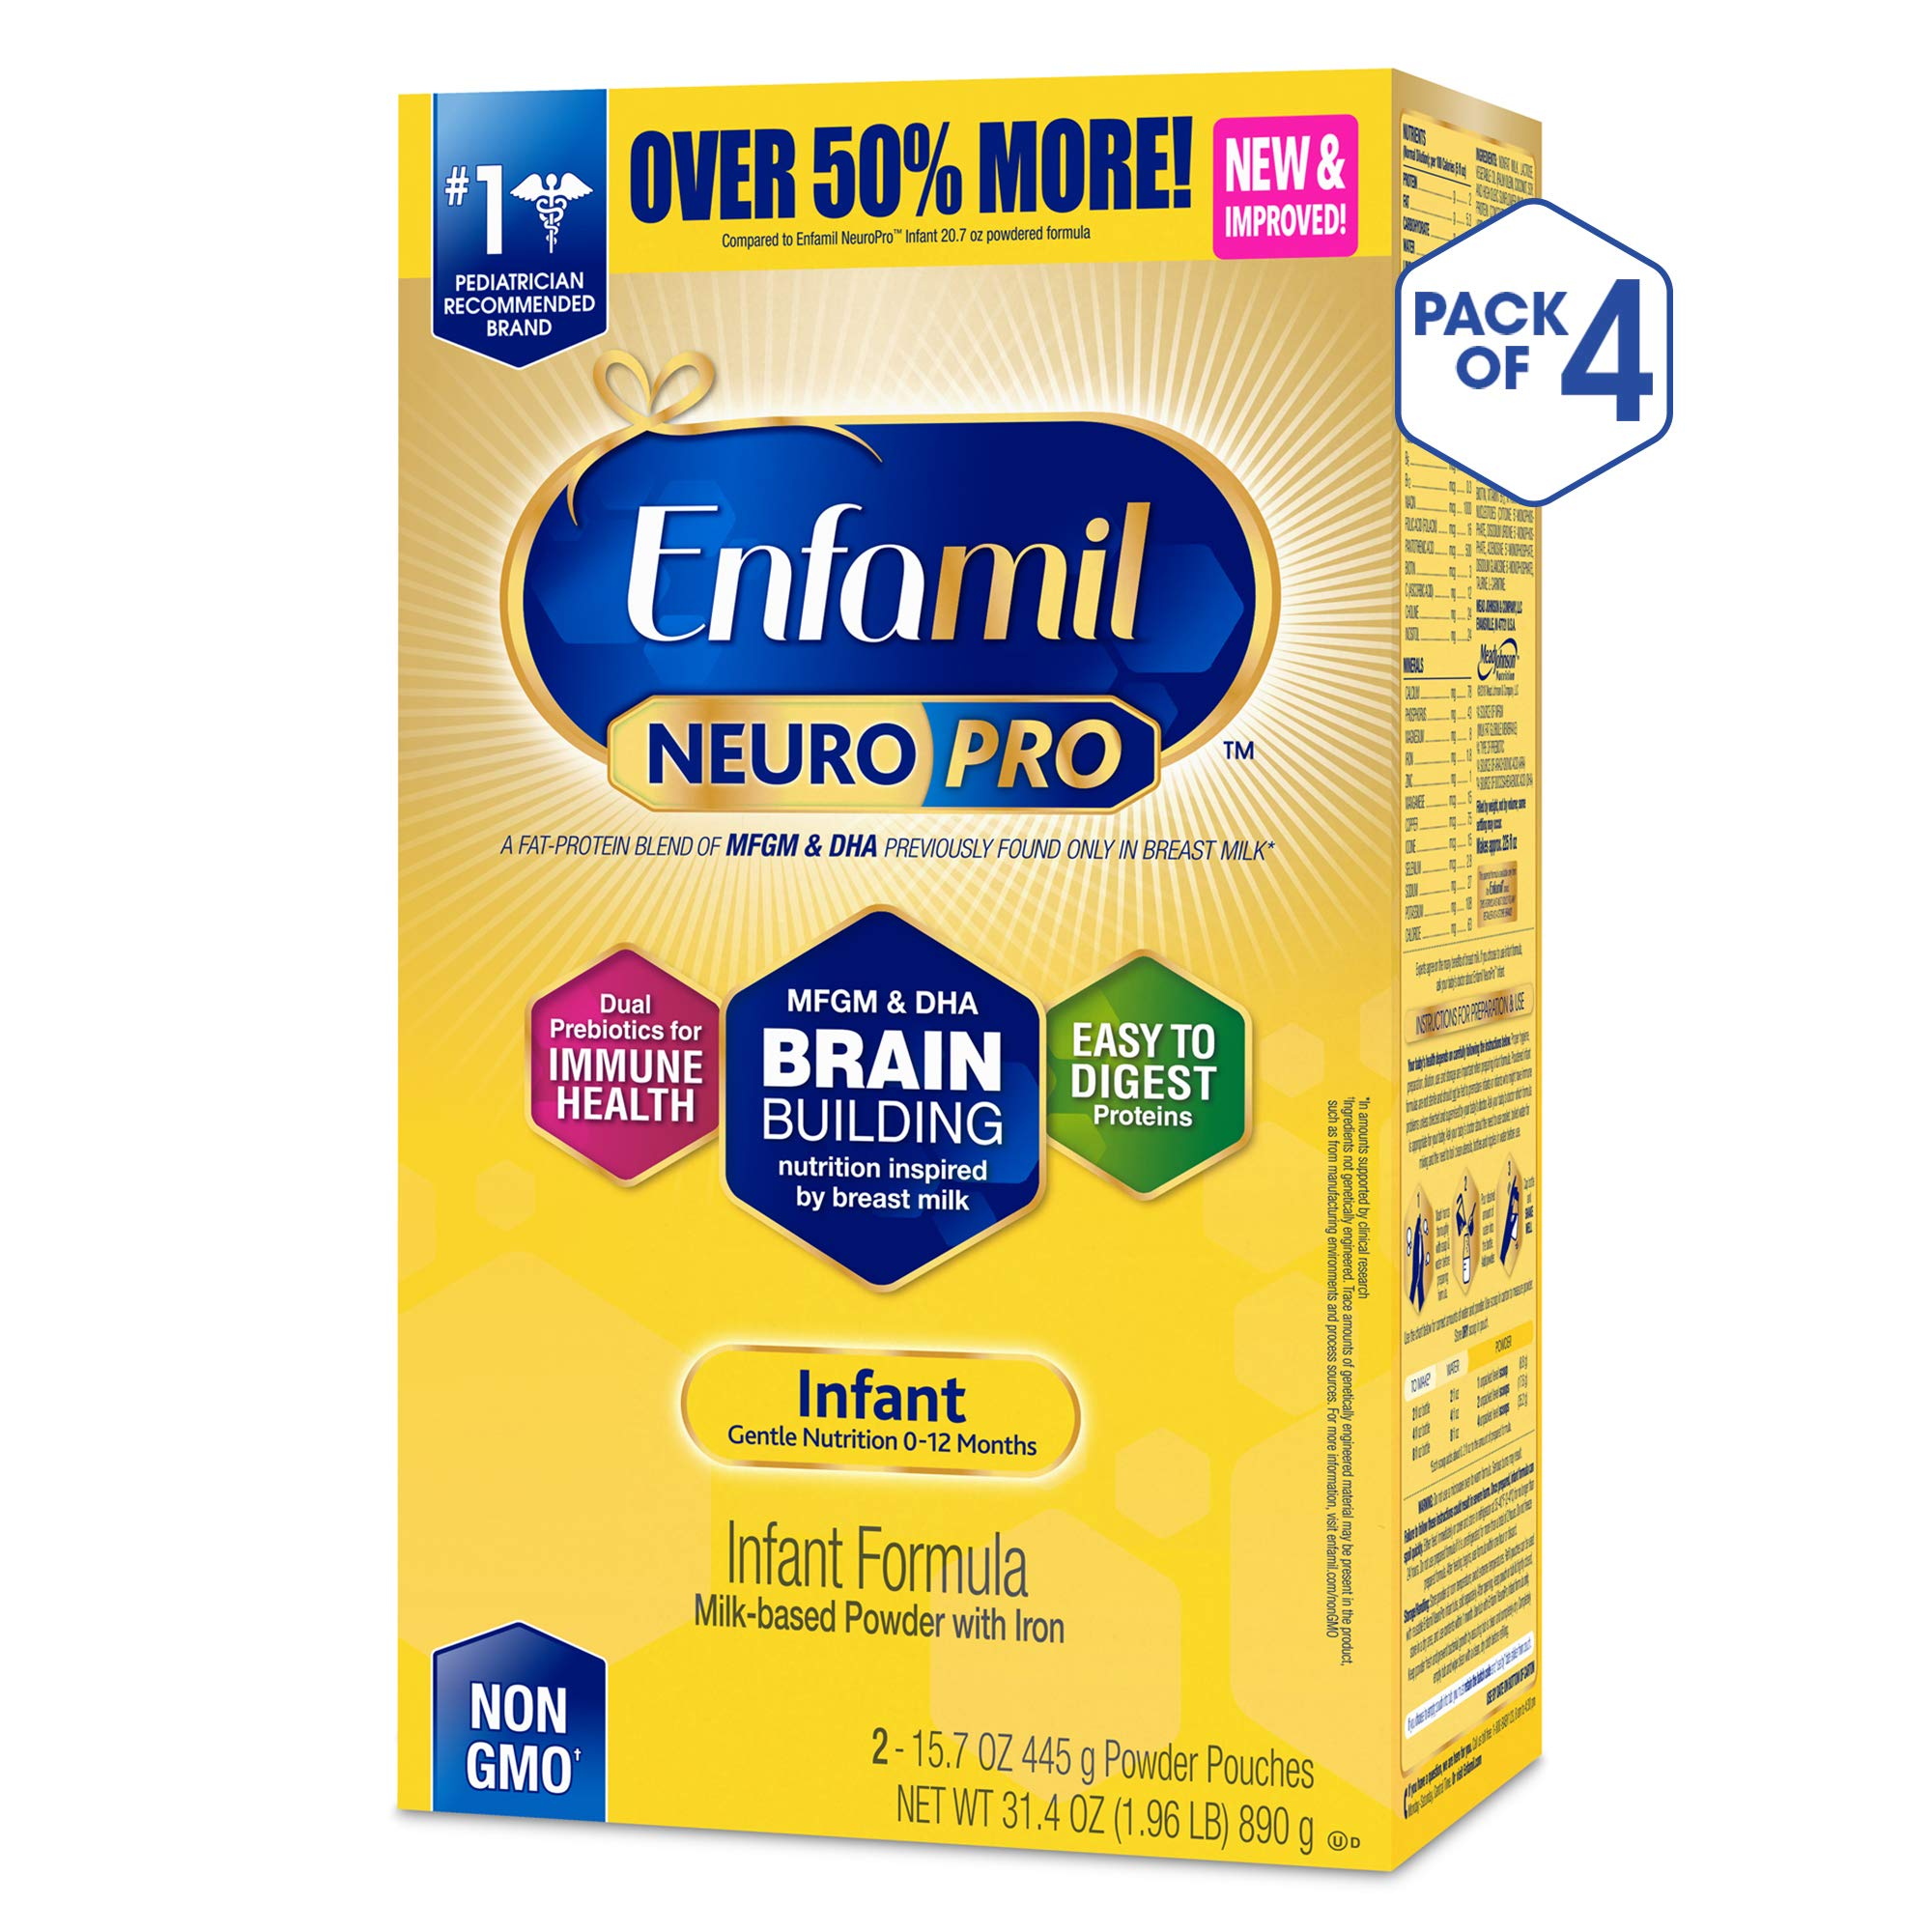 Enfamil NeuroPro Baby Formula Milk Powder Refill, 31.4 ounce (Pack of 4) - MFGM, Omega 3 DHA, Probiotics, Iron & Immune Support by Enfamil (Image #1)